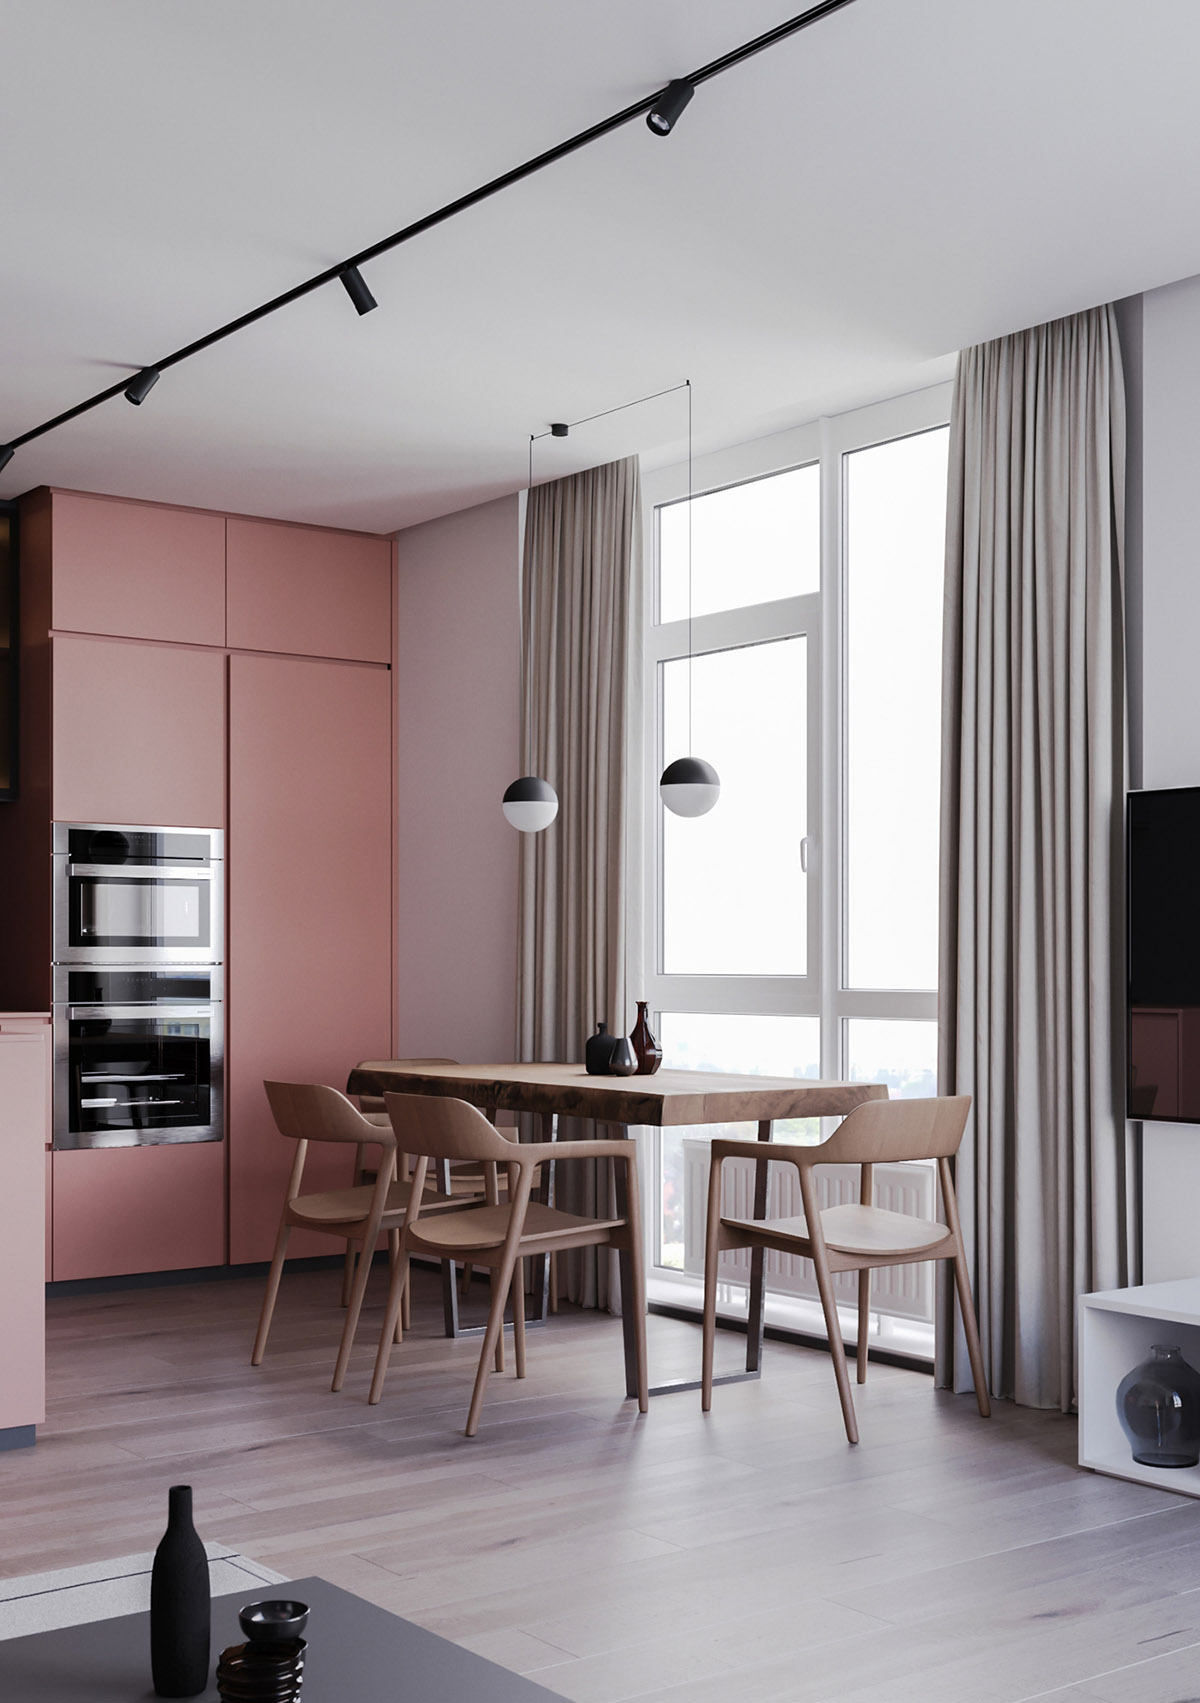 A Striking Example Of Interior Design Using Pink And Grey images 3